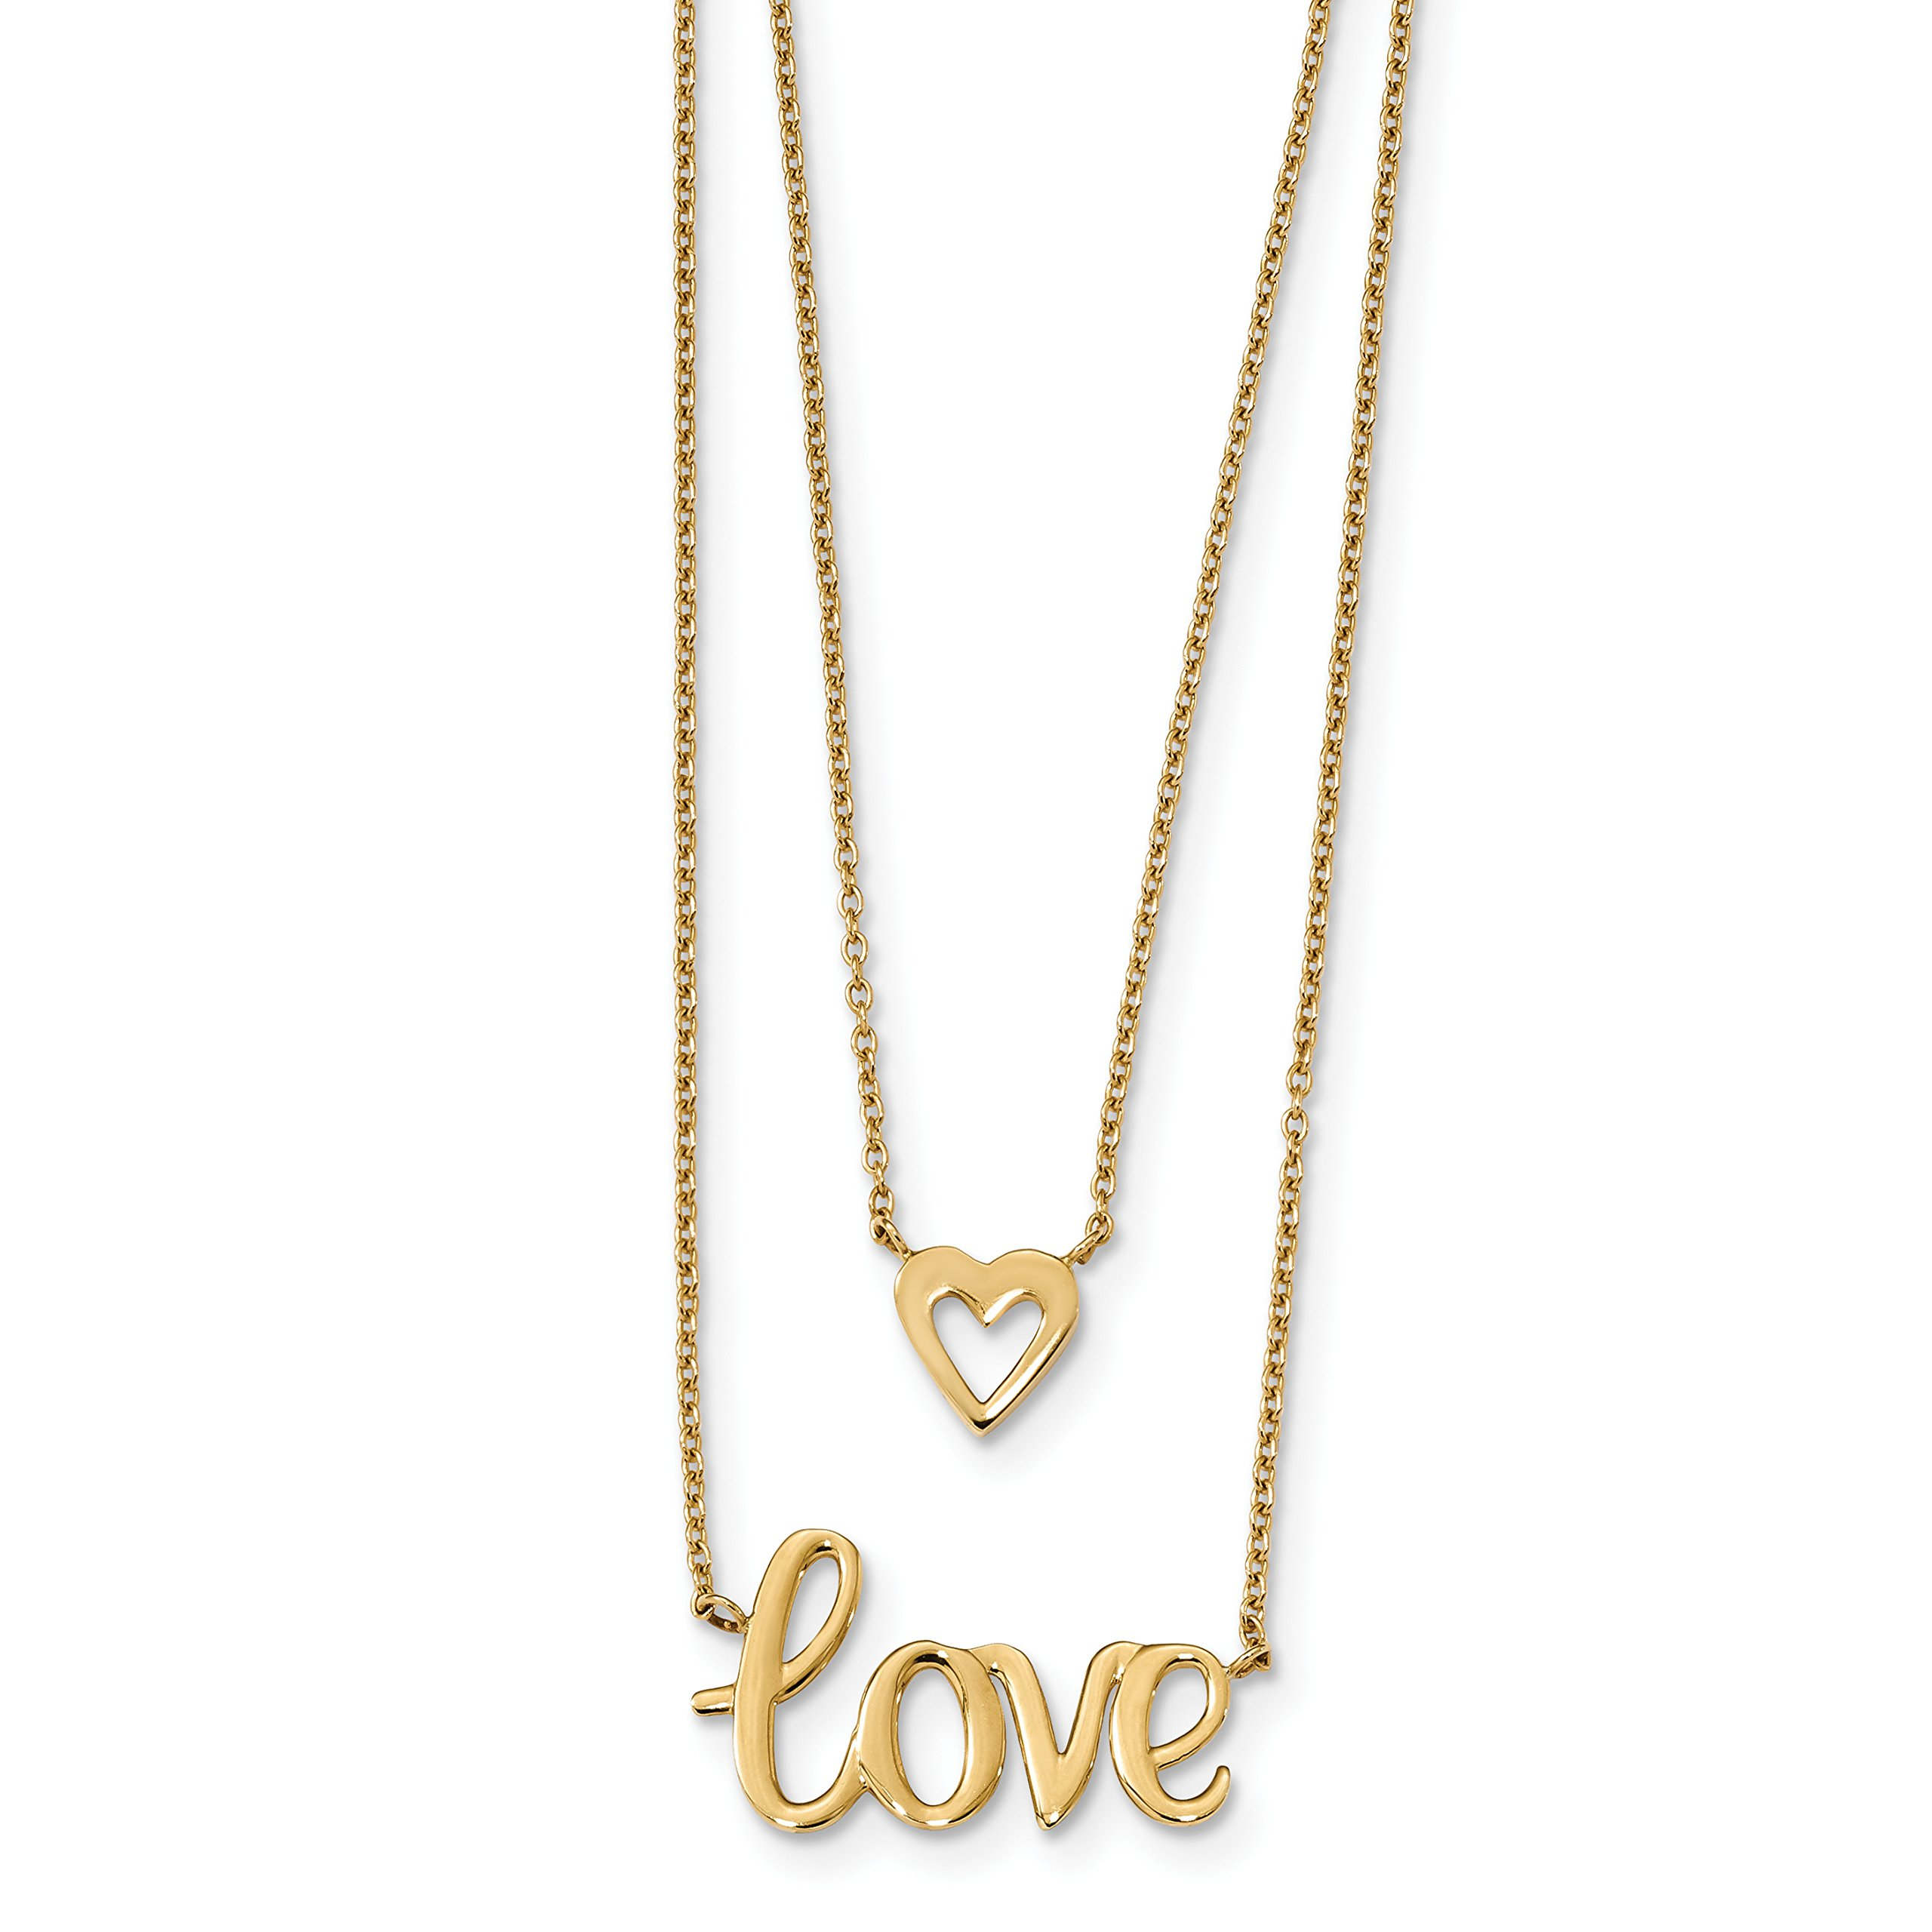 ICE CARATS 14k Yellow Gold 2 Strand Love Heart Chain Necklace Fancy Fine Jewelry Gift Set For Women Heart